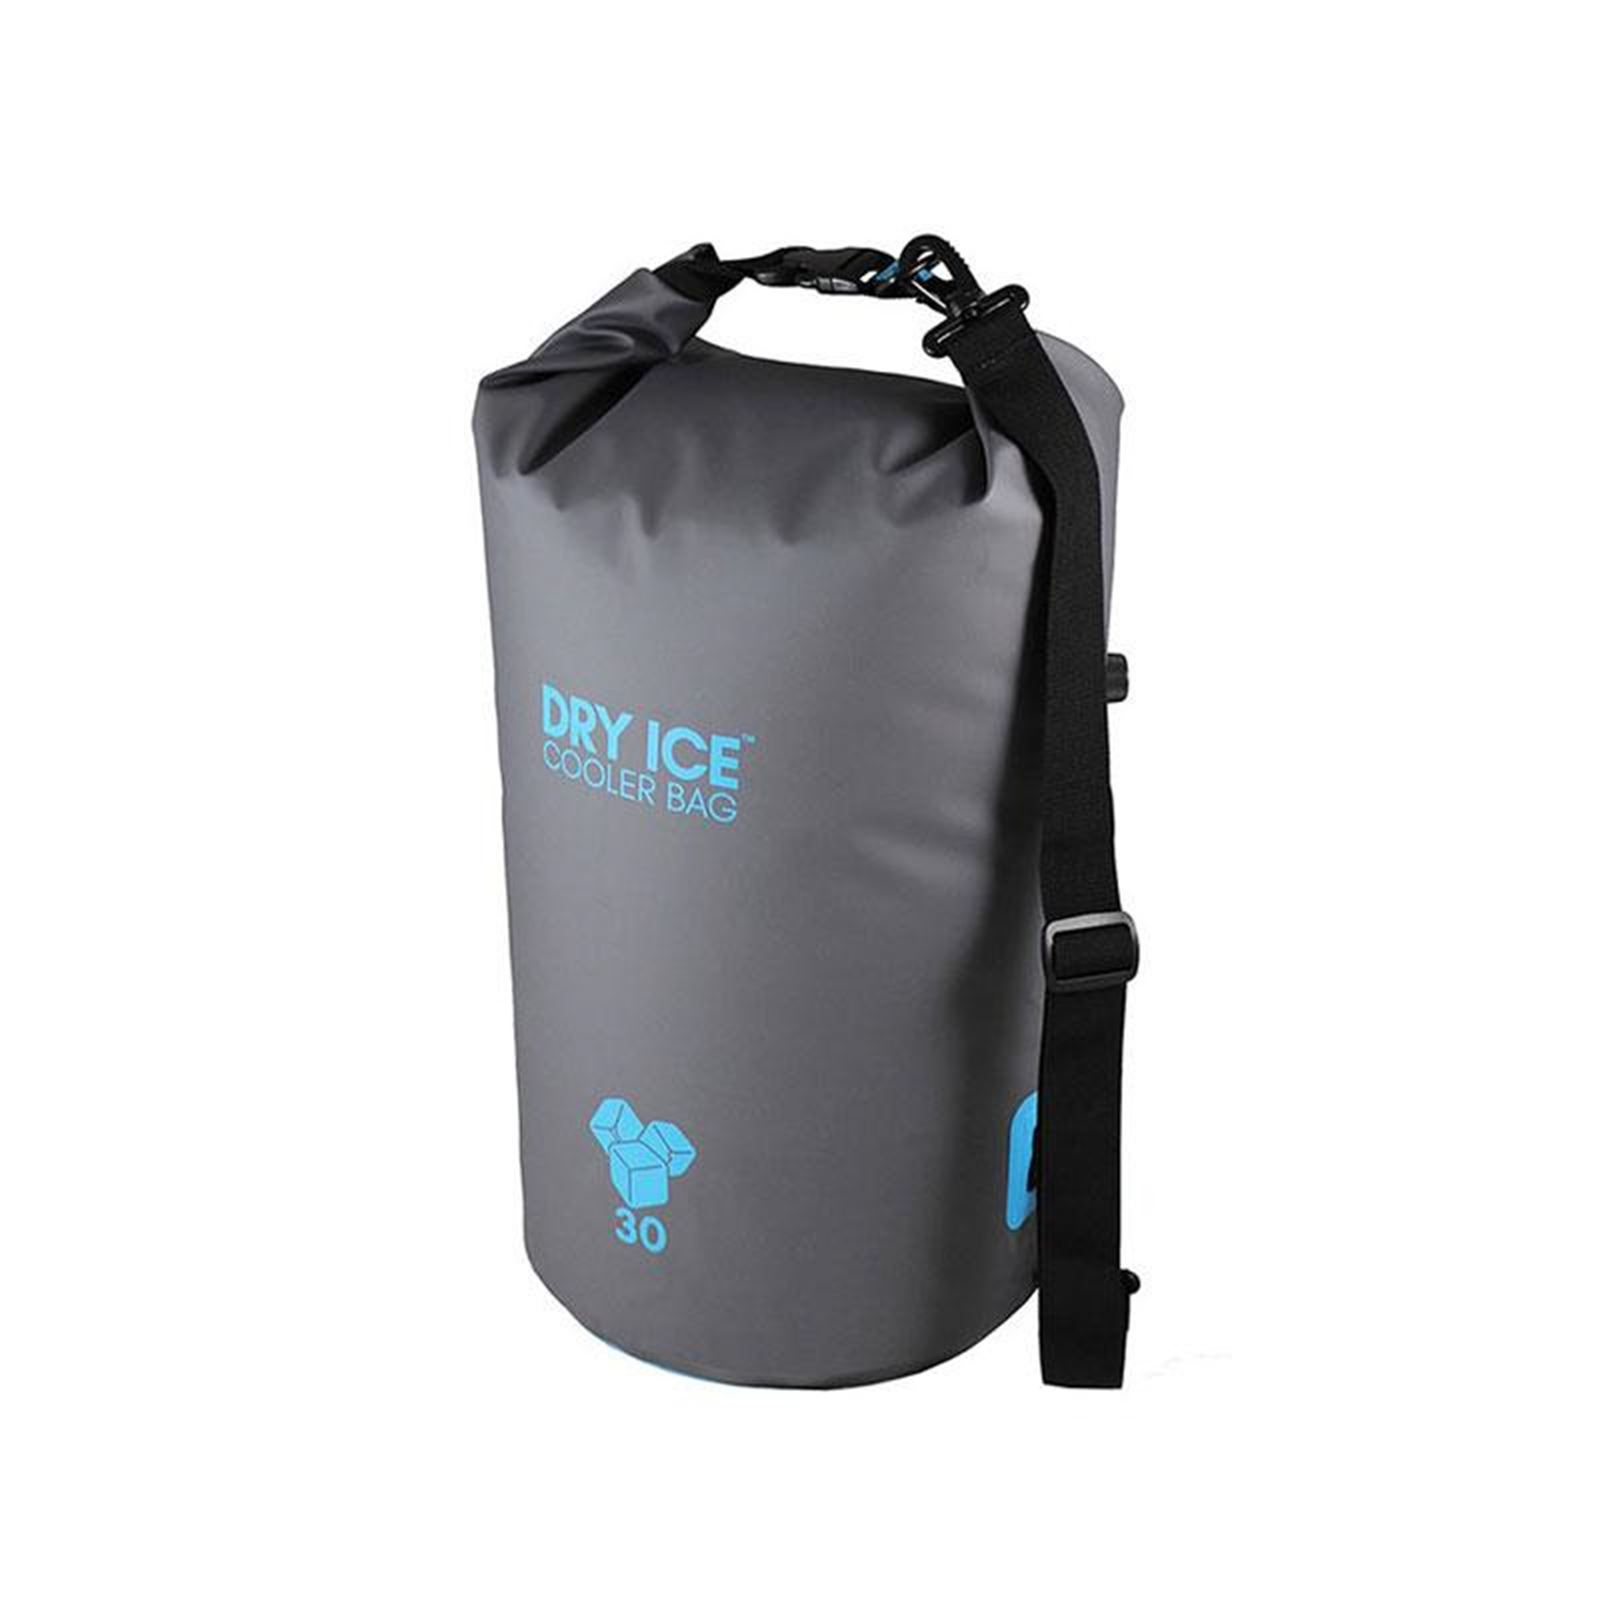 Dry Ice Cooler Bag 30 Lit - Gray